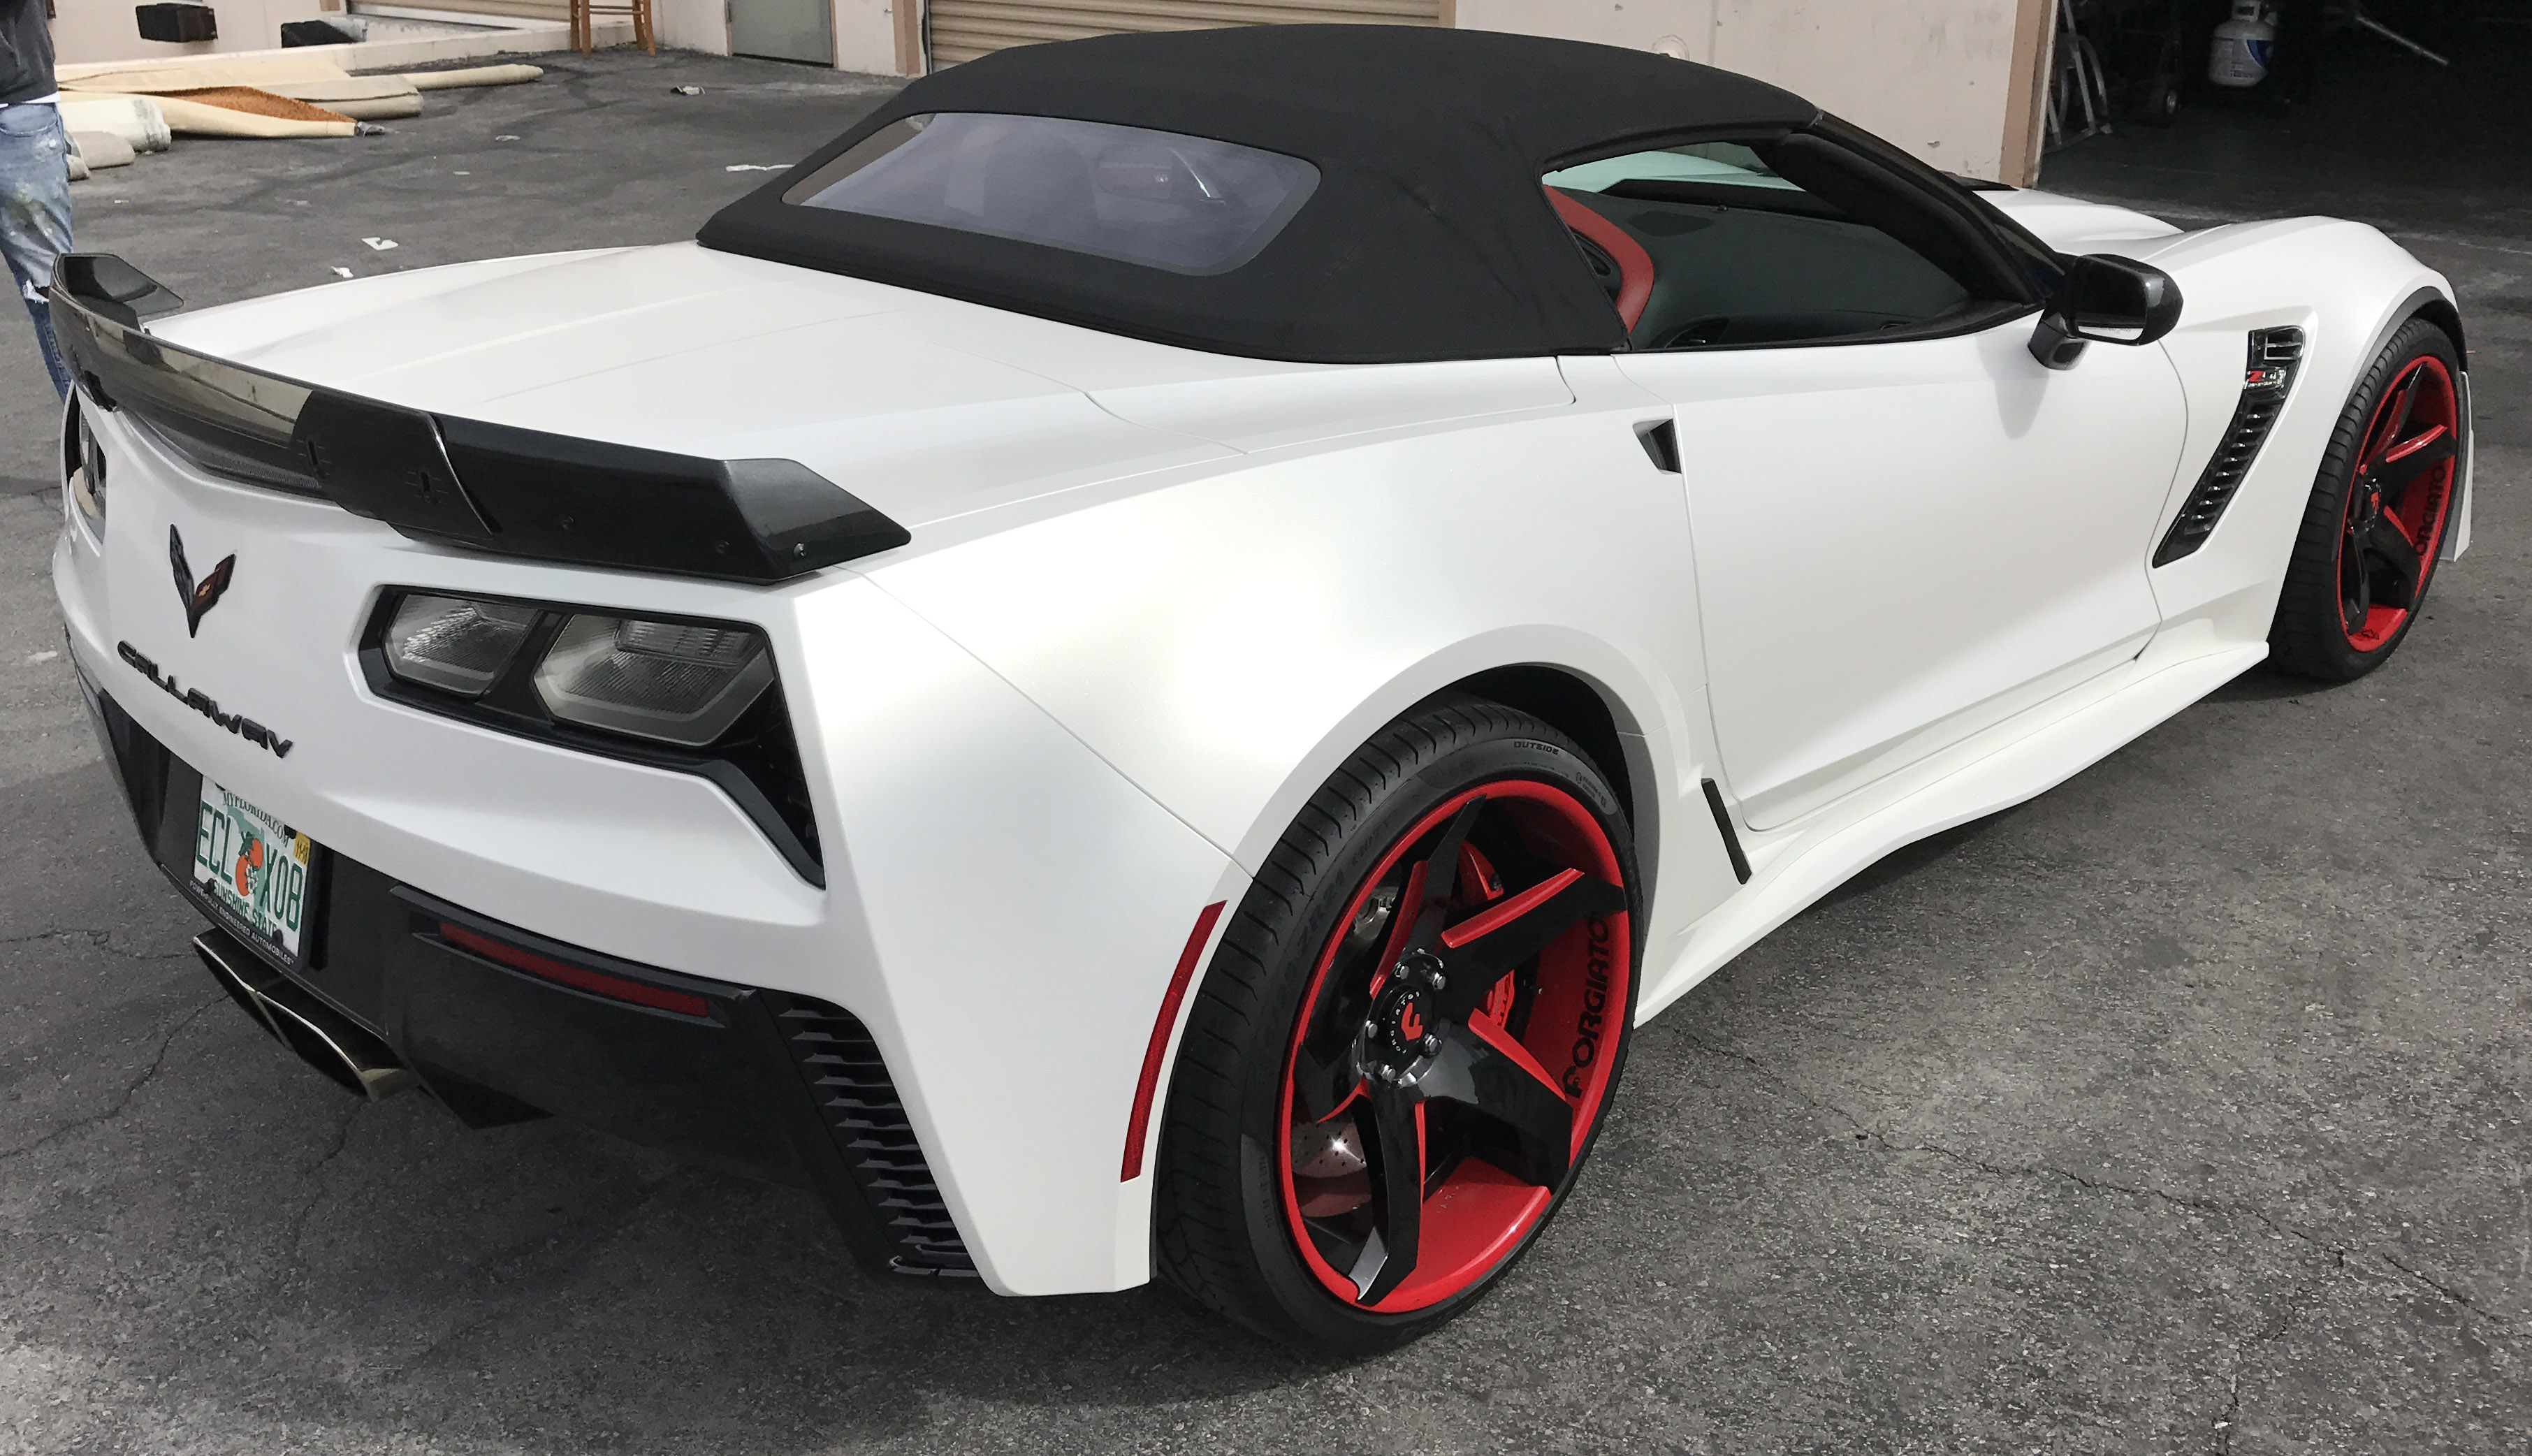 Car Sweepstakes 2017 >> 2017 Corvette Stingray Callaway 757 - Pearl White Car Wrap - GeckoWraps Las Vegas Vehicle Wraps ...